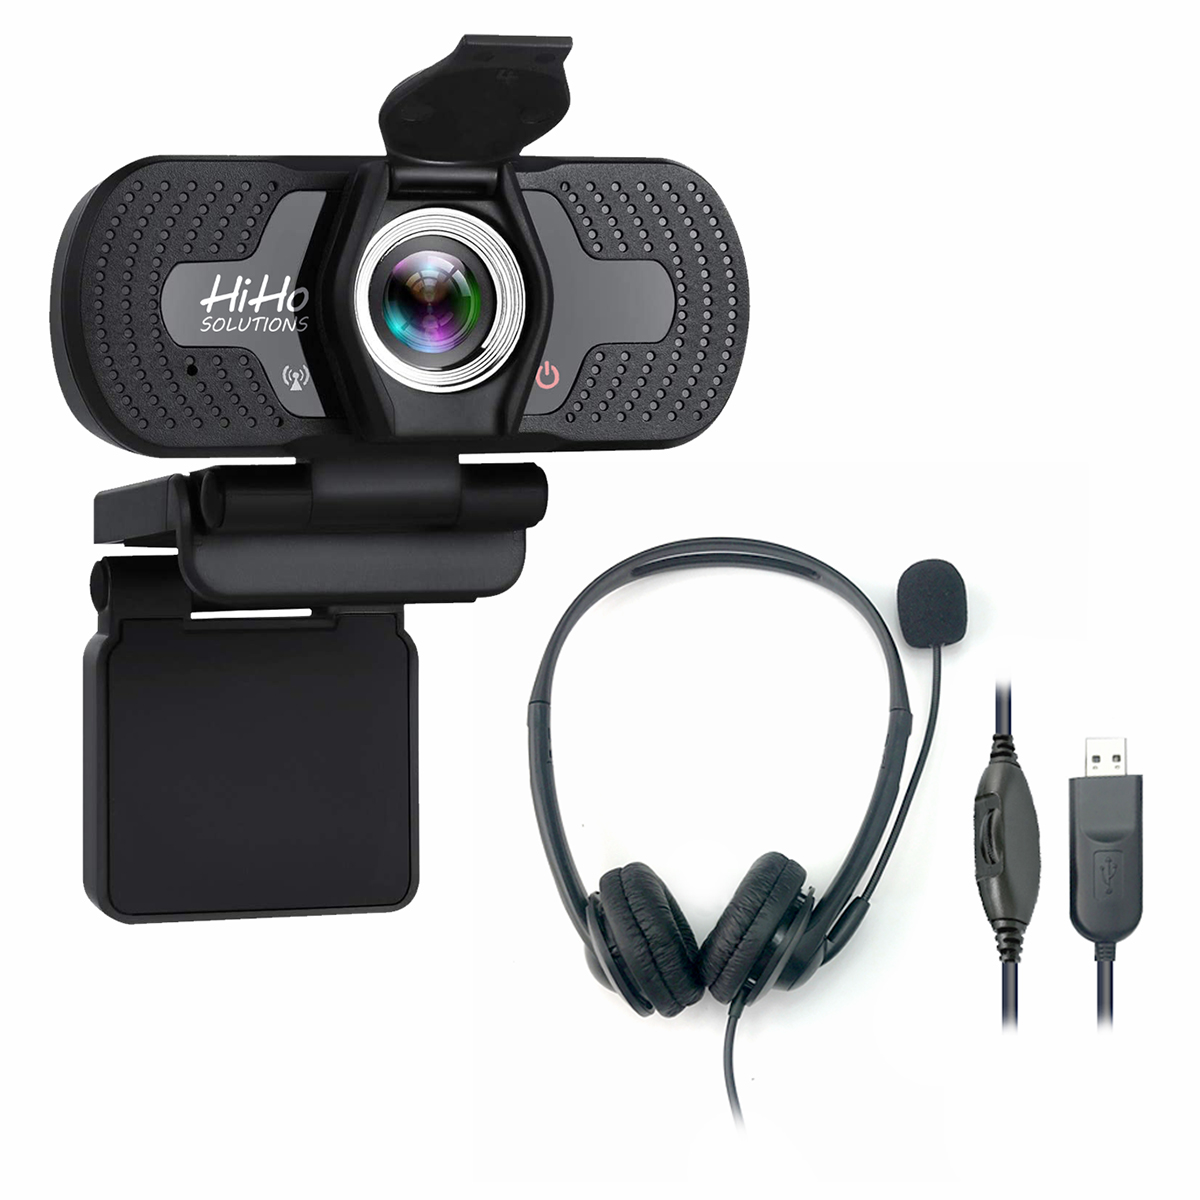 HiHo 1000W HD Webcam and HiHo 218B Headset Bundle